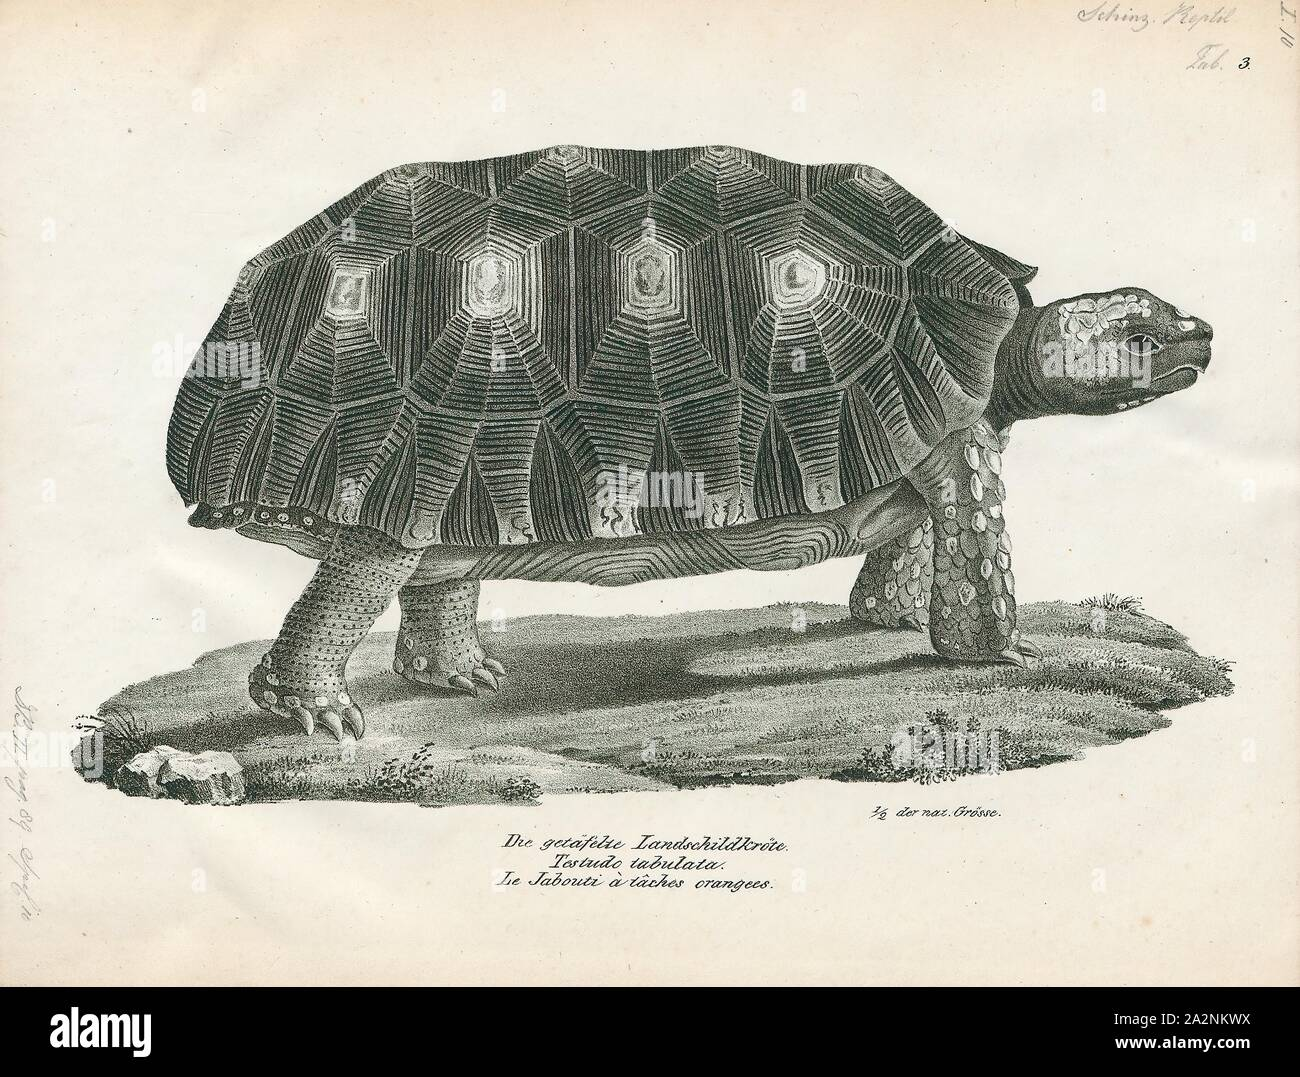 Testudo Tabulata Print The Yellow Footed Tortoise Chelonoidis Denticulatus Also Known As The Brazilian Giant Tortoise Commonly Referred To As The Brazilian Giant Turtle Or More Commonly The Big Turtle Is A Species